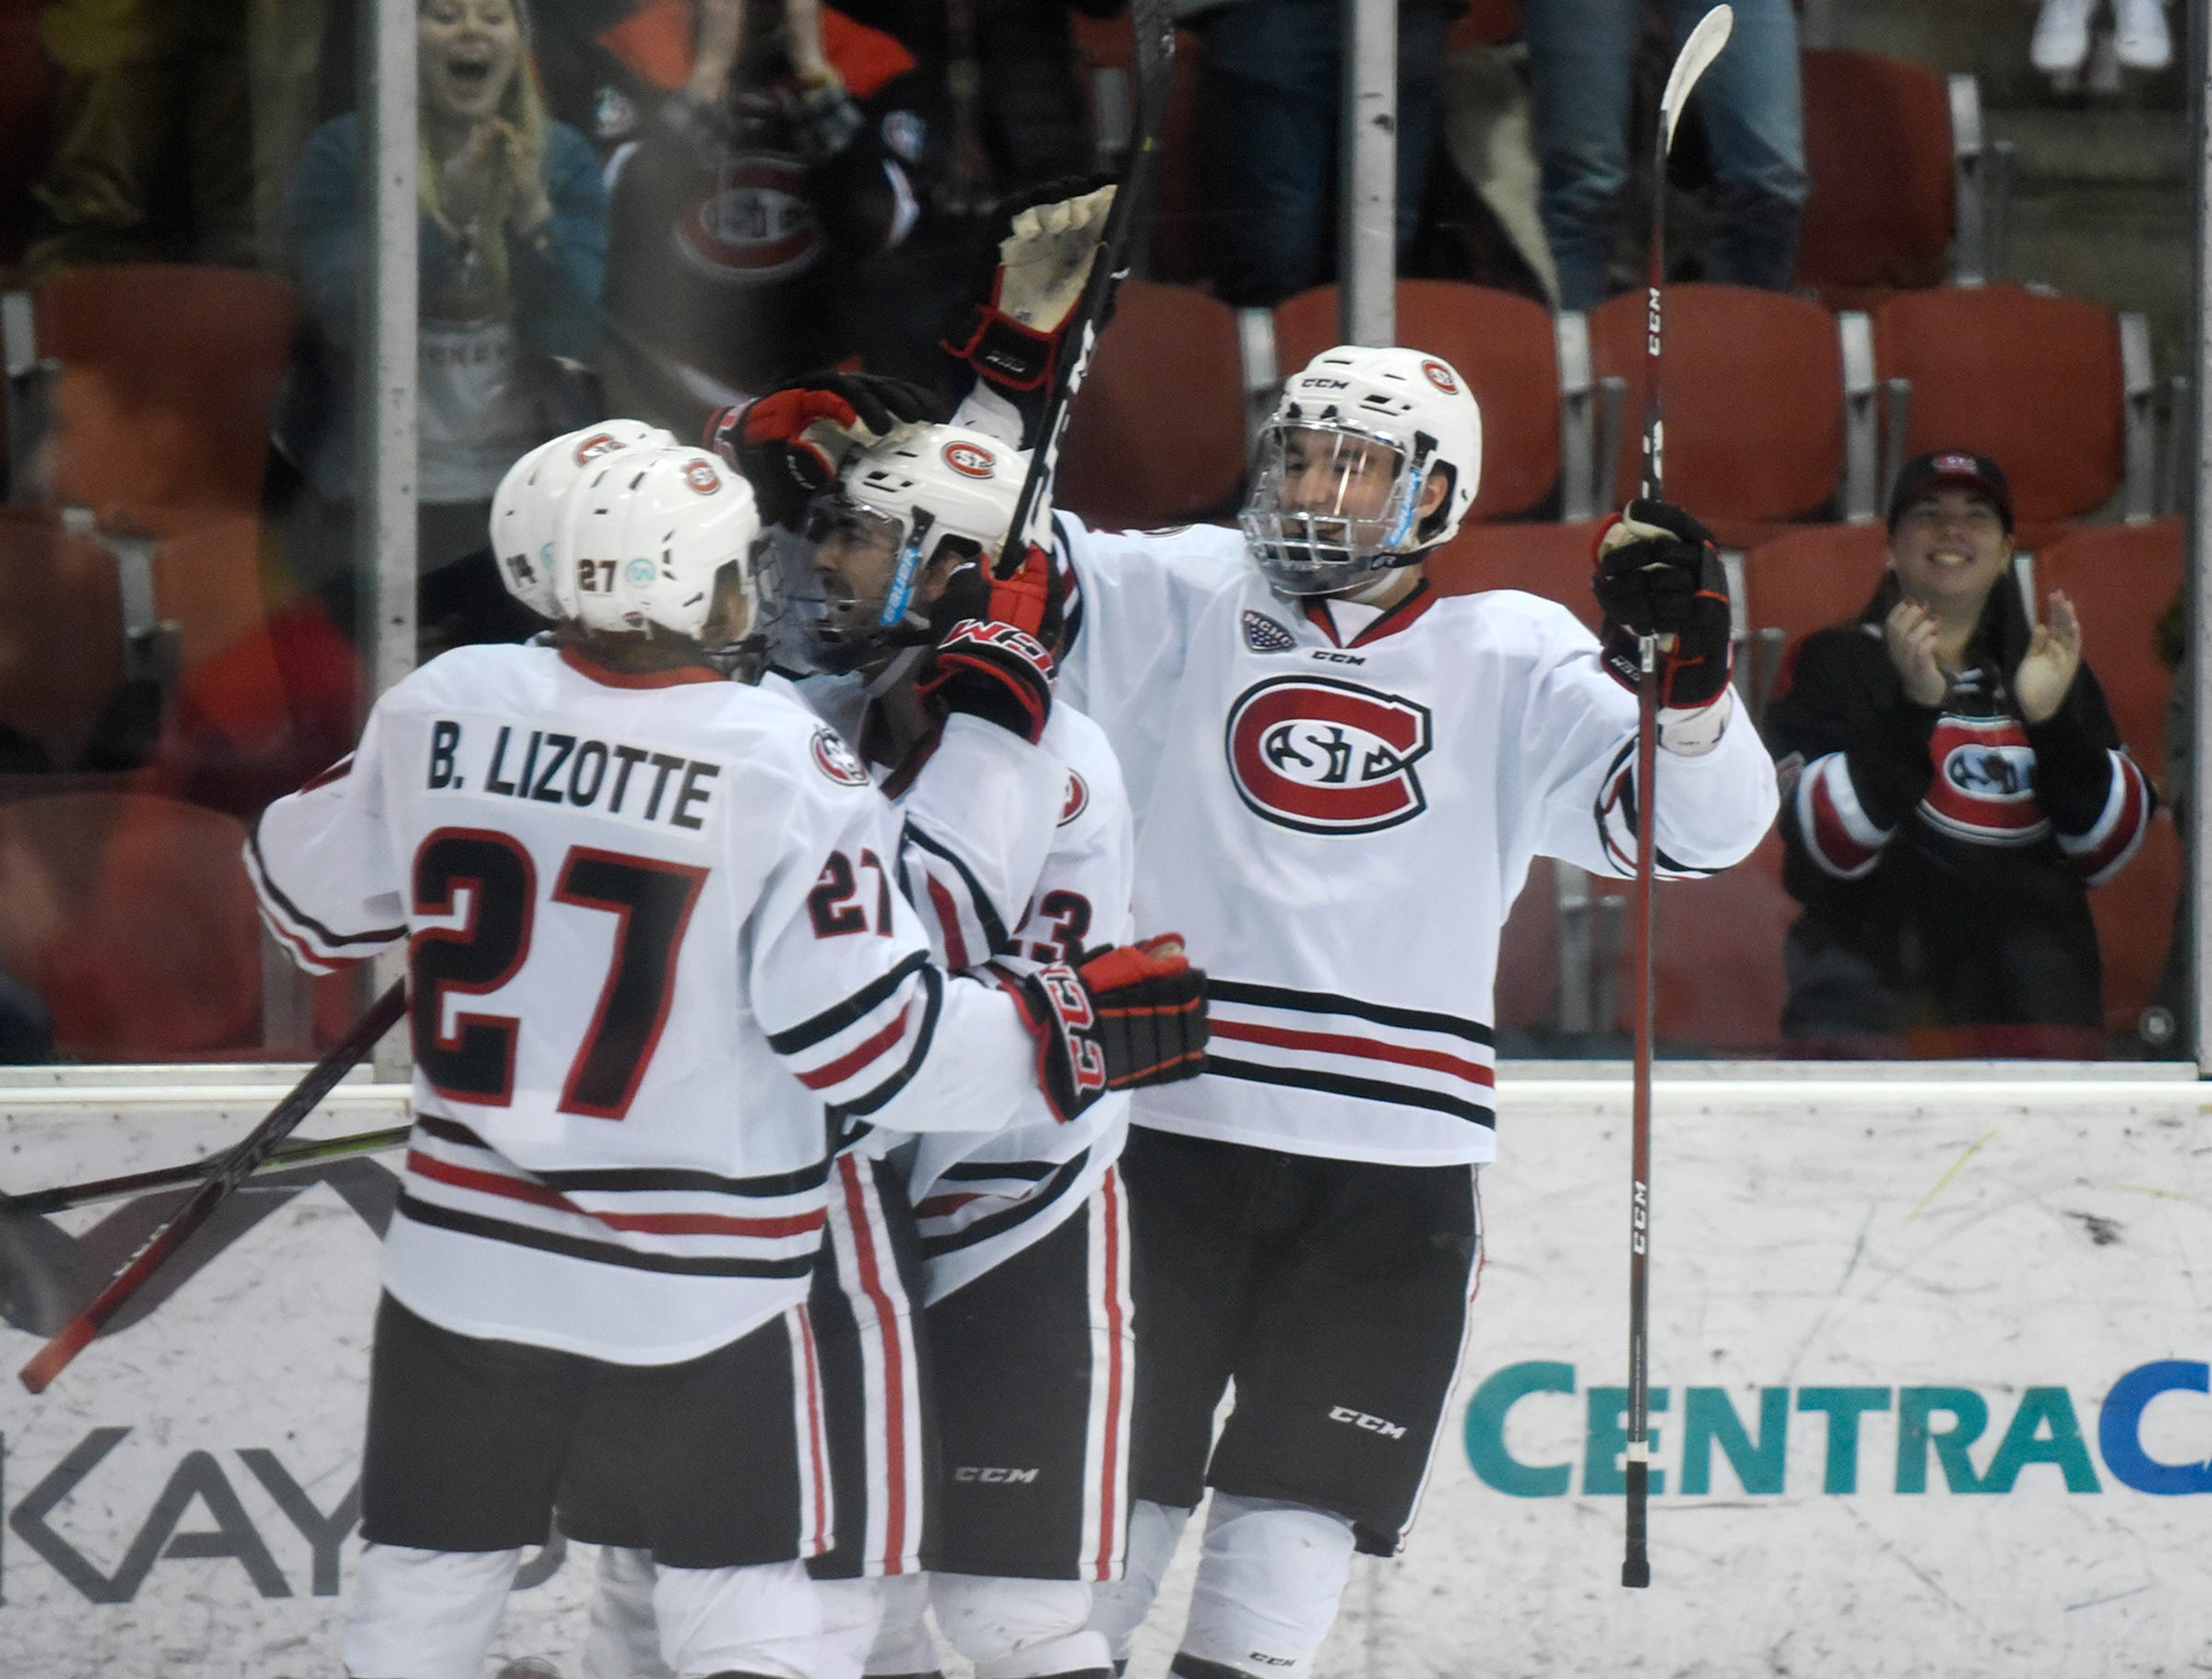 St. Cloud state players celebrate a goal during the first period of the Saturday, Feb. 9, game at the Herb Brooks National Hockey Center in St. Cloud.